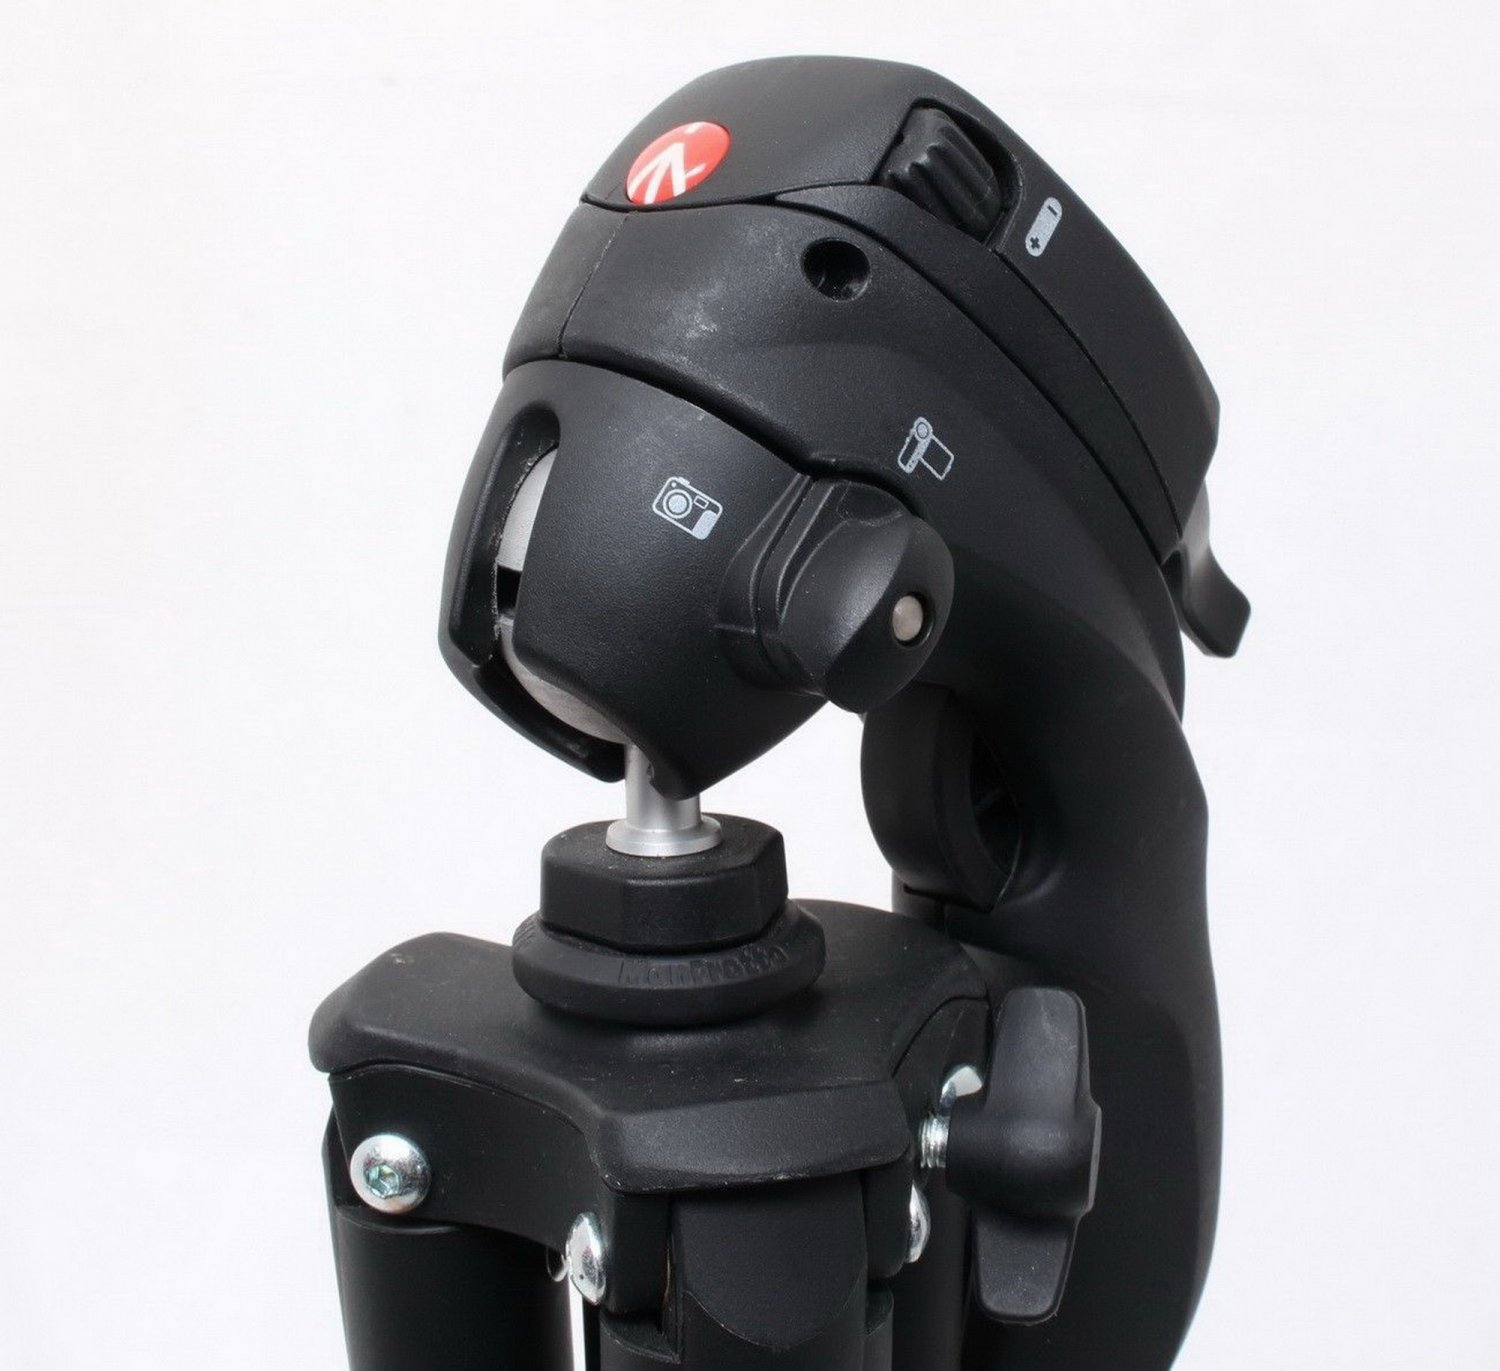 Manfrotto MK COMPACT ACN 004